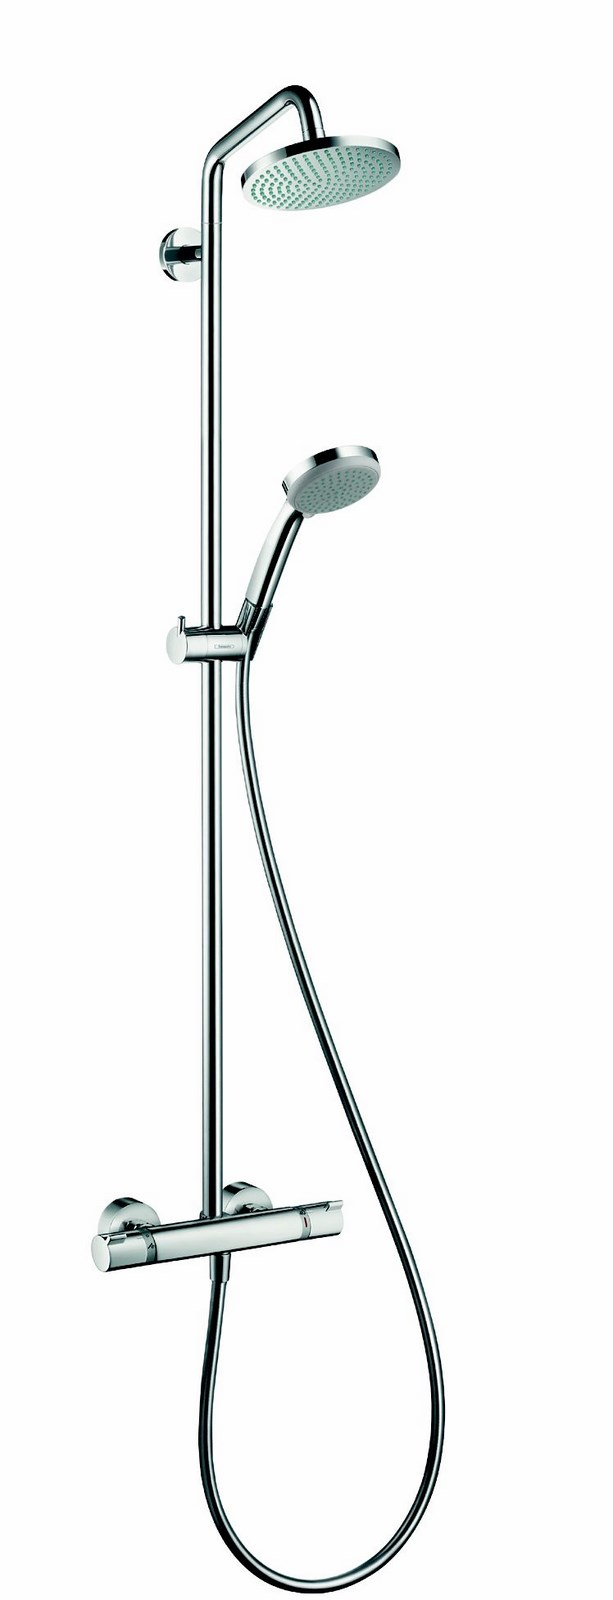 colonne de douche showerpipe croma 160 hansgrohe. Black Bedroom Furniture Sets. Home Design Ideas